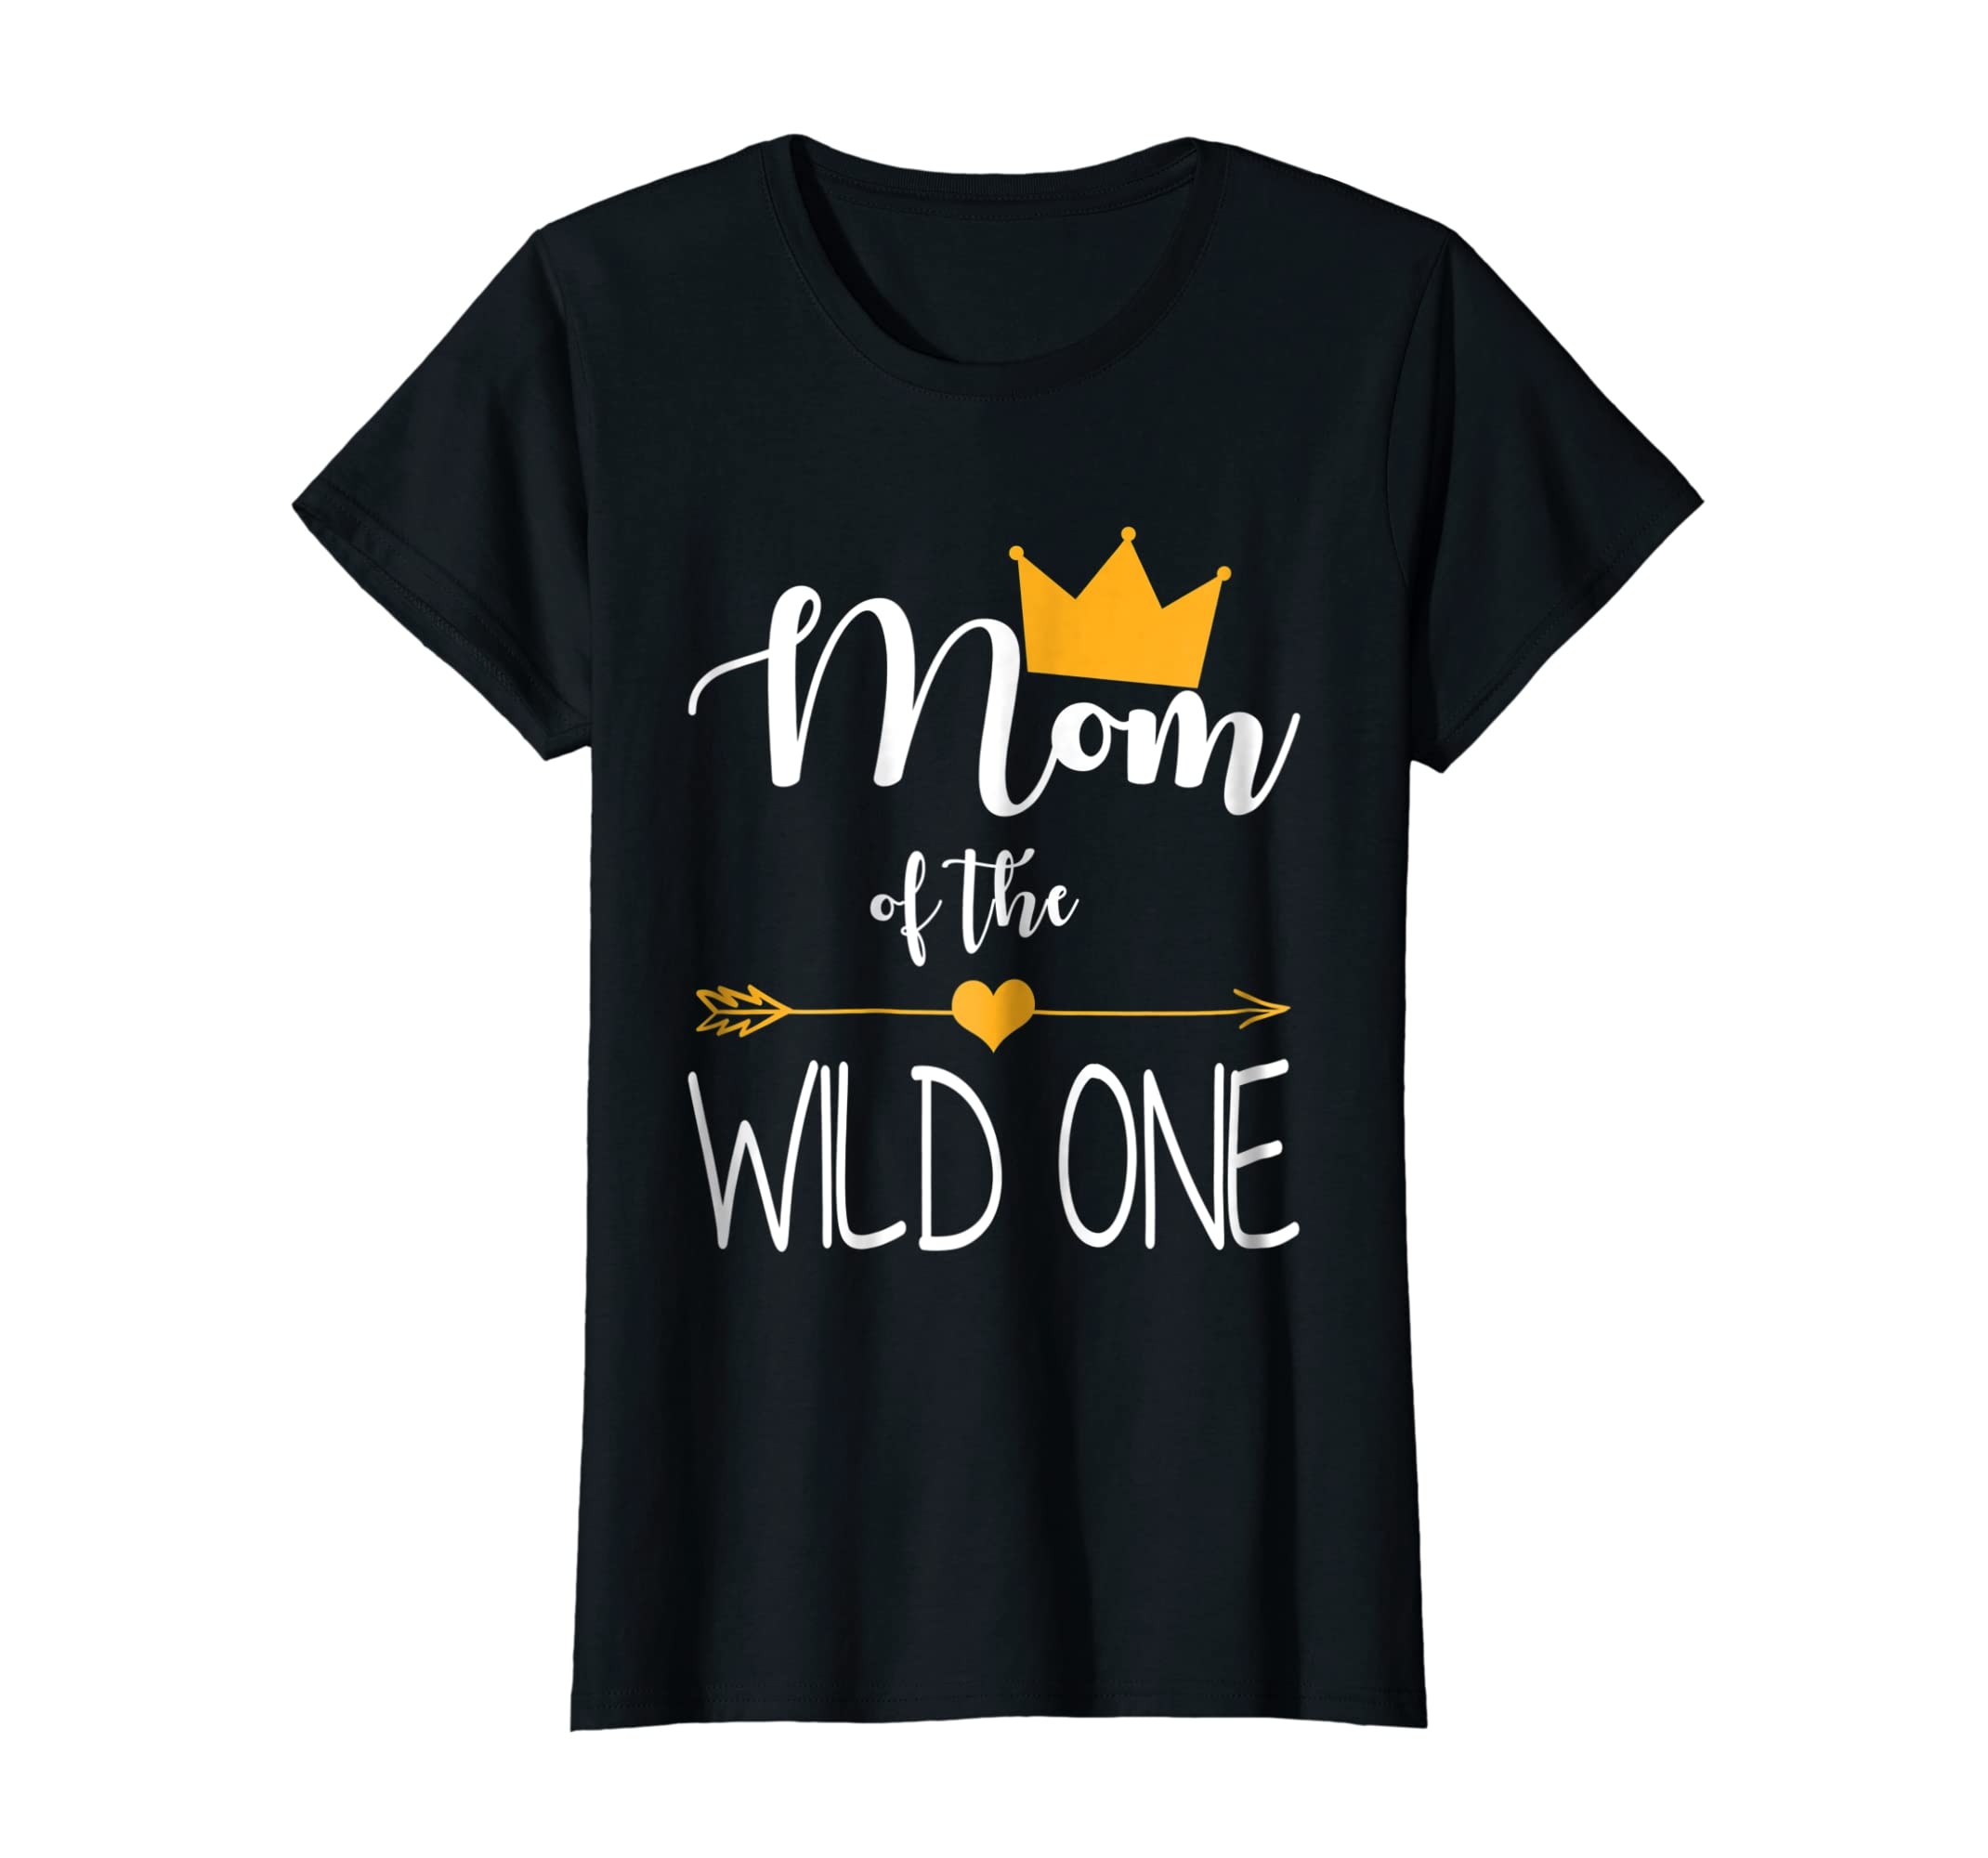 41cd695c Amazon.com: Mom of the Wild One baby first birthday funny gift shirt:  Clothing